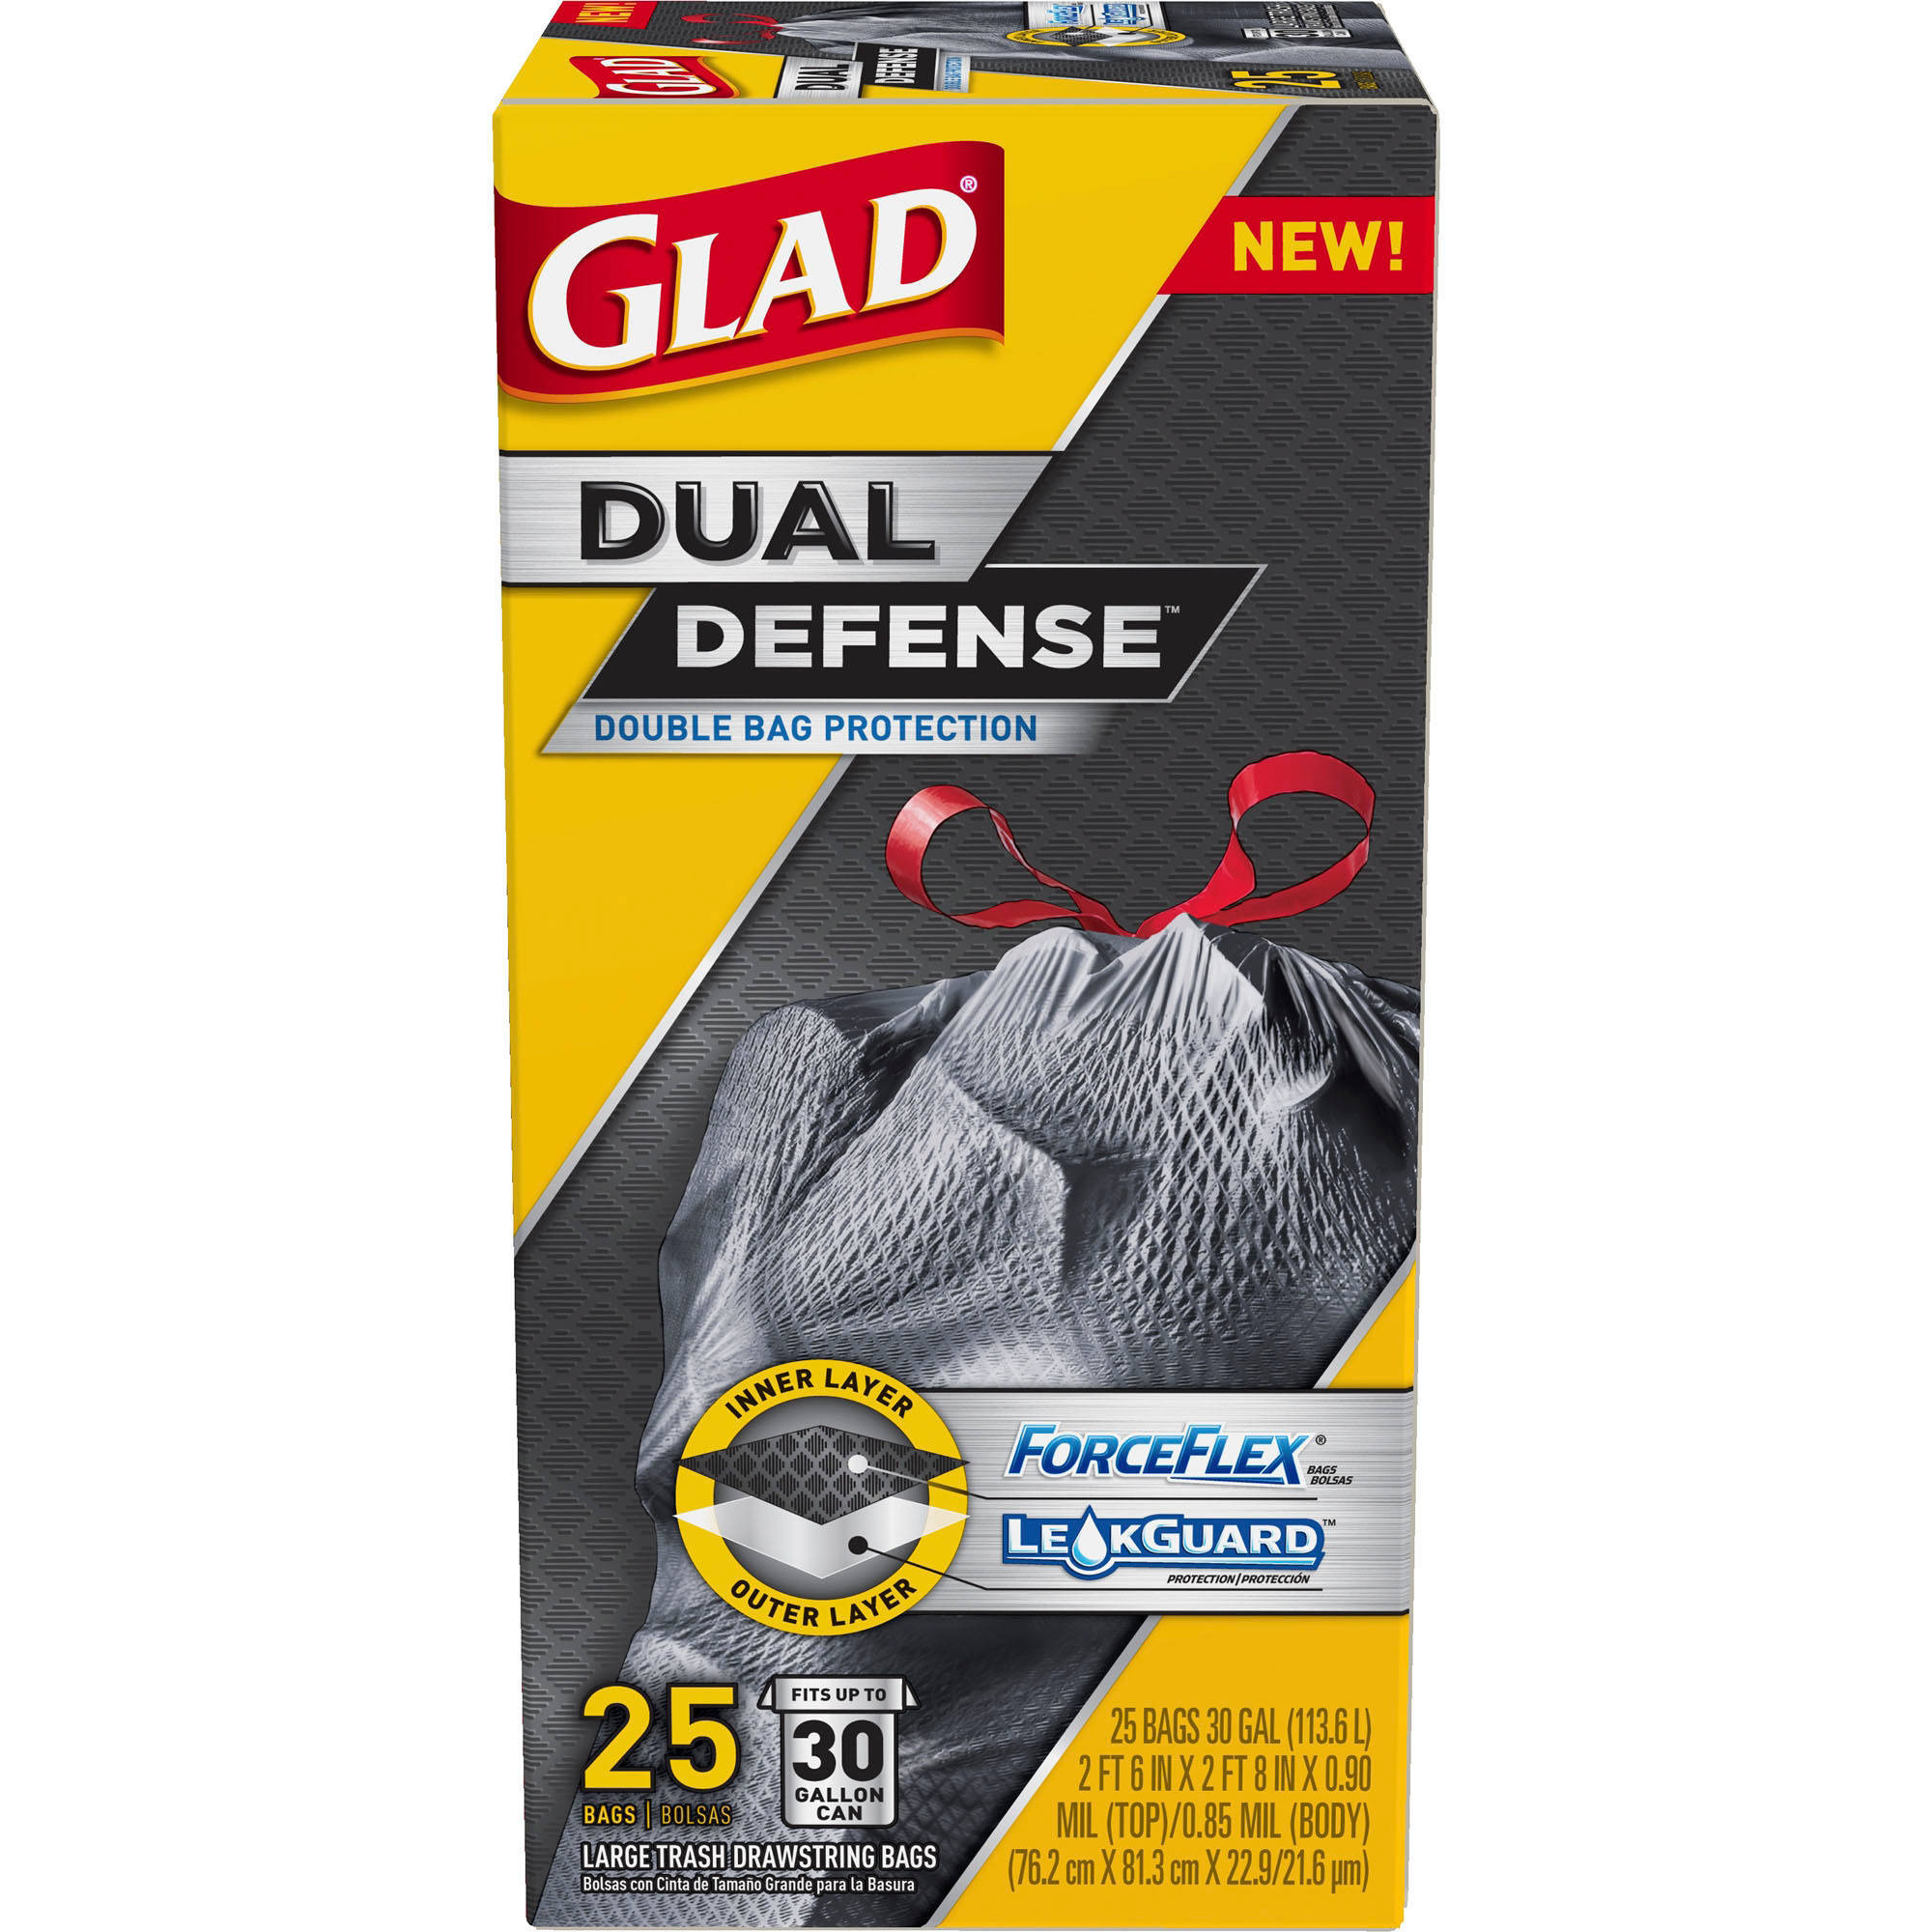 Glad Dual Defense Drawstring Large Trash Bags, 30 Gallon, 25 Count